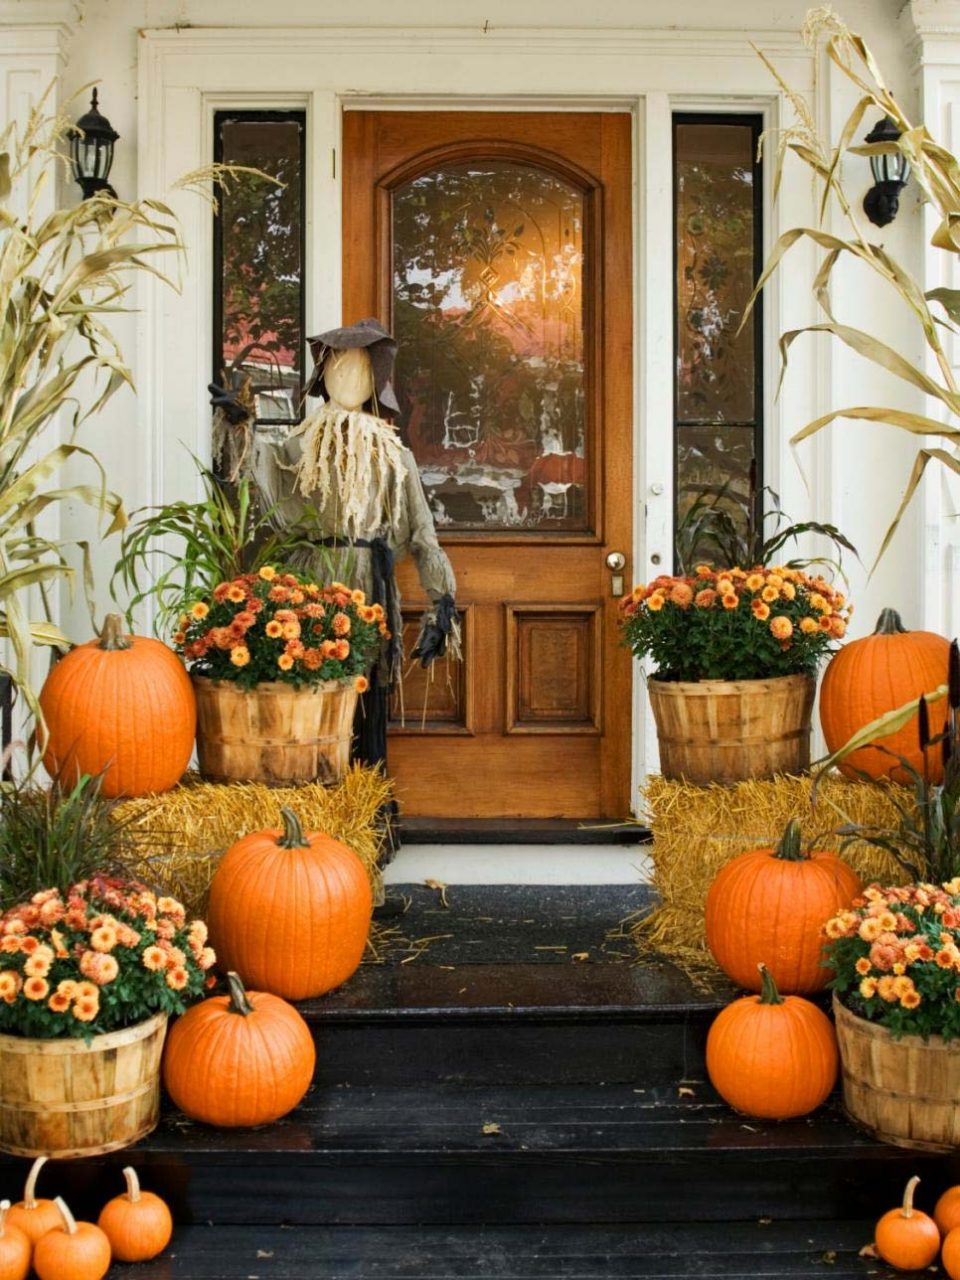 Fall Decor Ideas To Decorate Outside For Fall Fall Office Decor